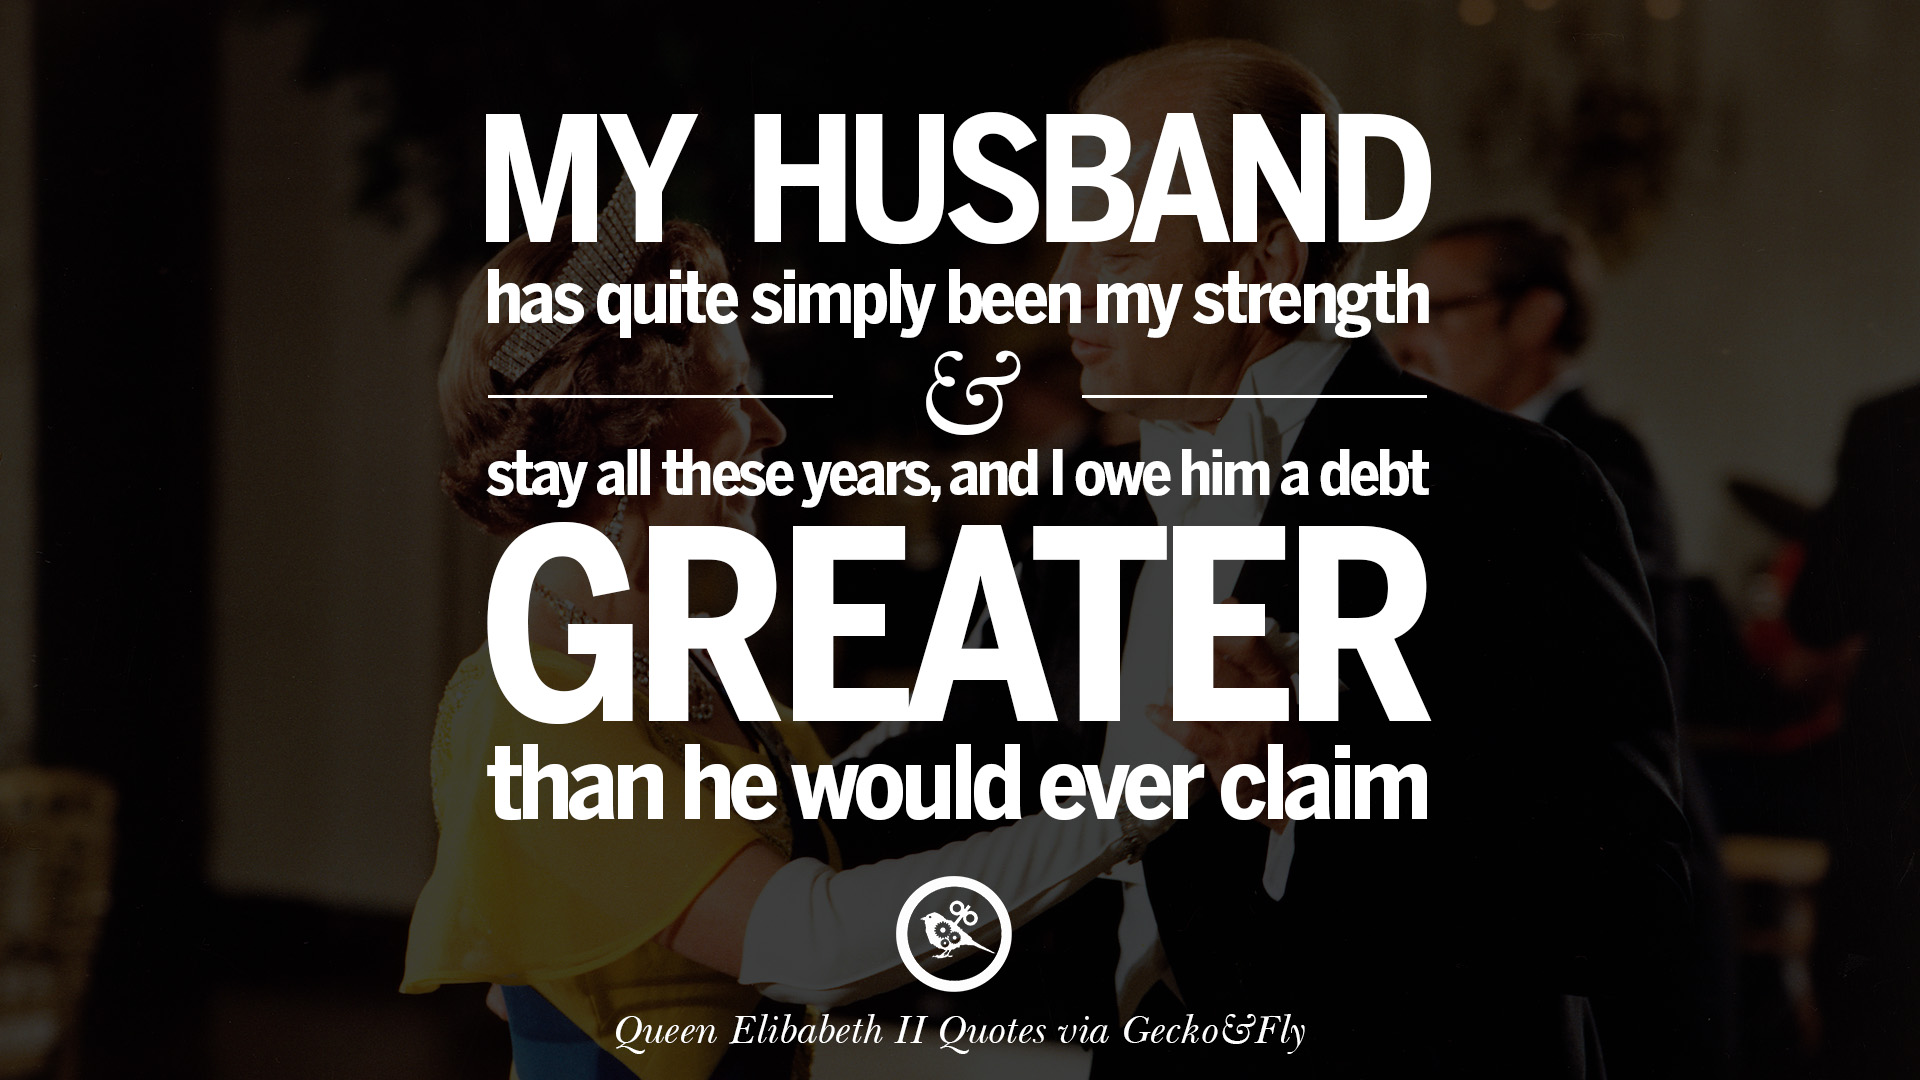 King And Queen Love Quotes 13 Majestic Quotes & 80 Facts On Queen Elizabeth Ii On Love Grief